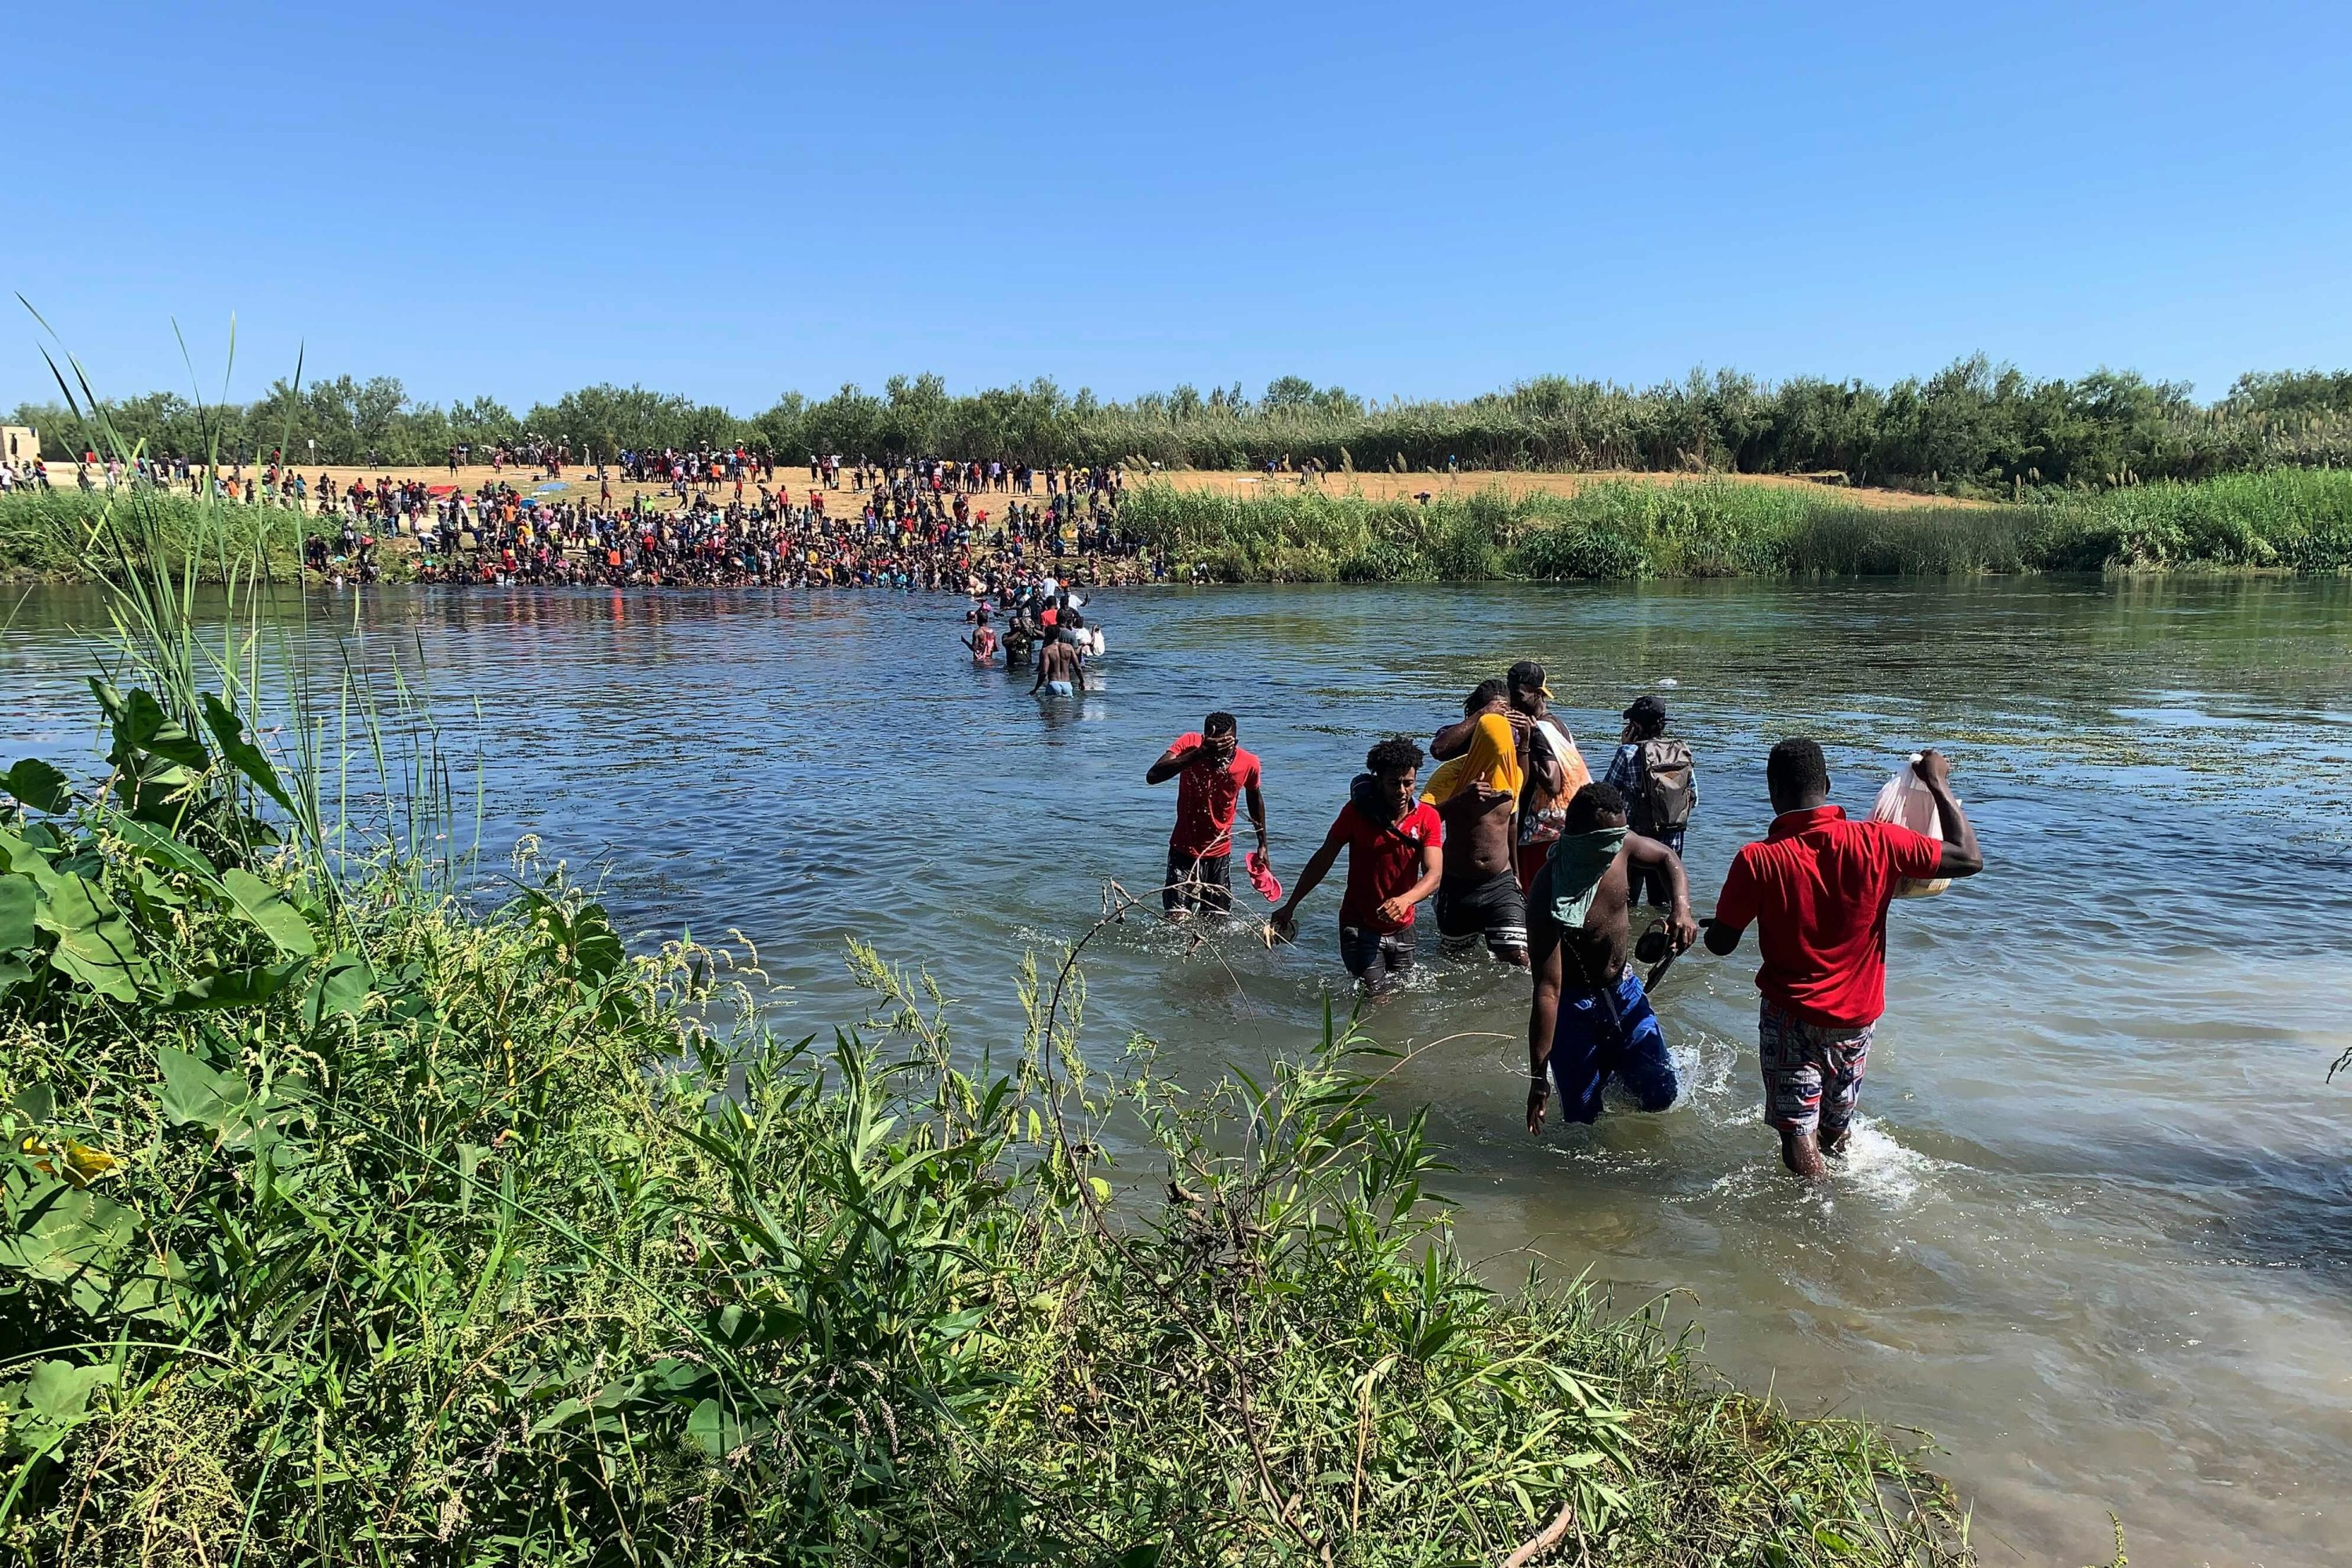 Migrants find an alternate place to cross from Mexico to the United States after access to a dam was closed, Ciudad Acuña, Mexico, Sept. 19, 2021. (AP Photo)